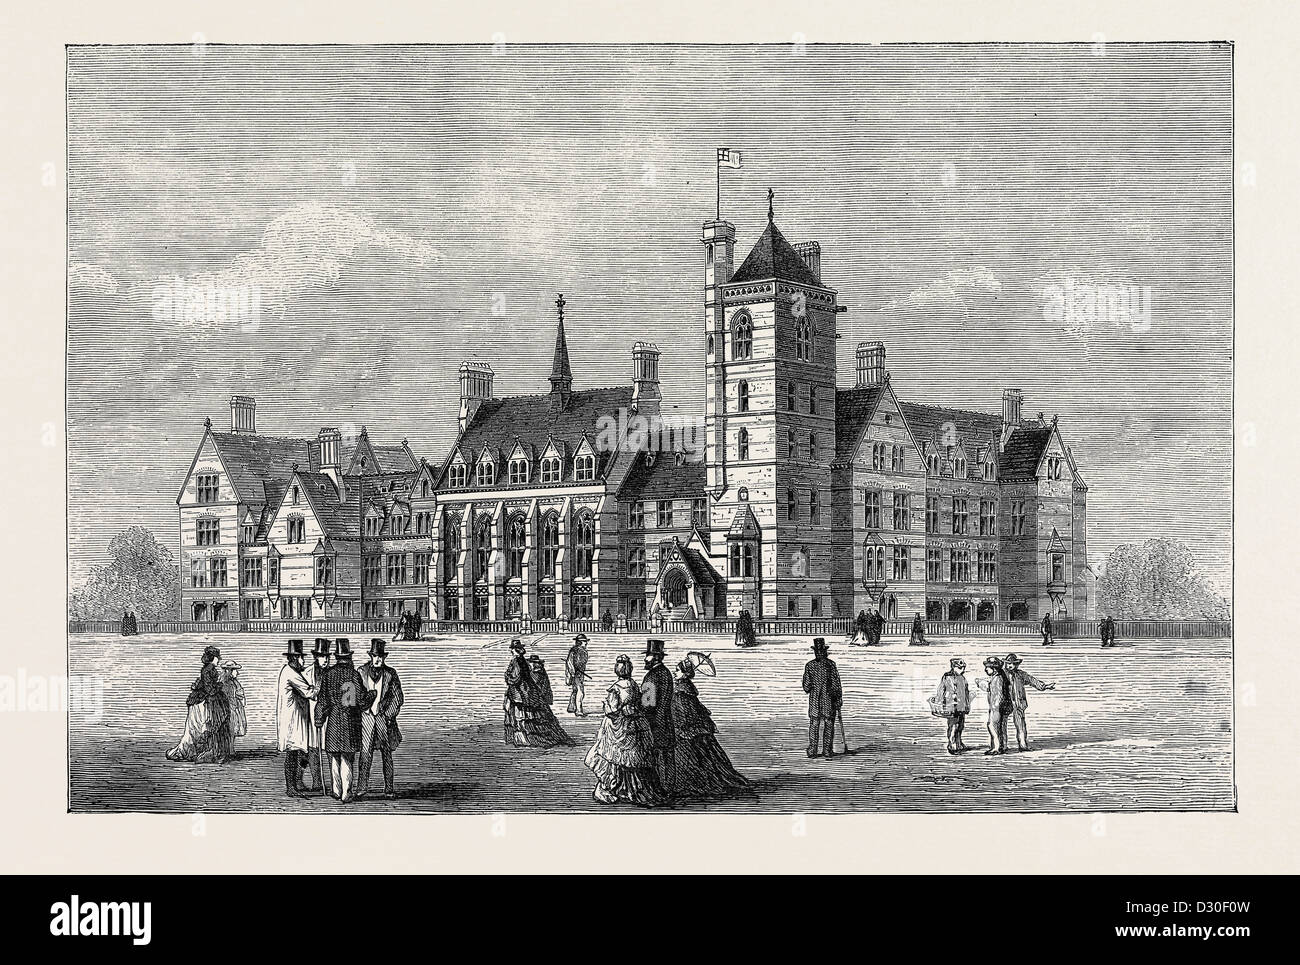 SEAMENS' ORPHAN INSTITUTION AT LIVERPOOL - Stock Image